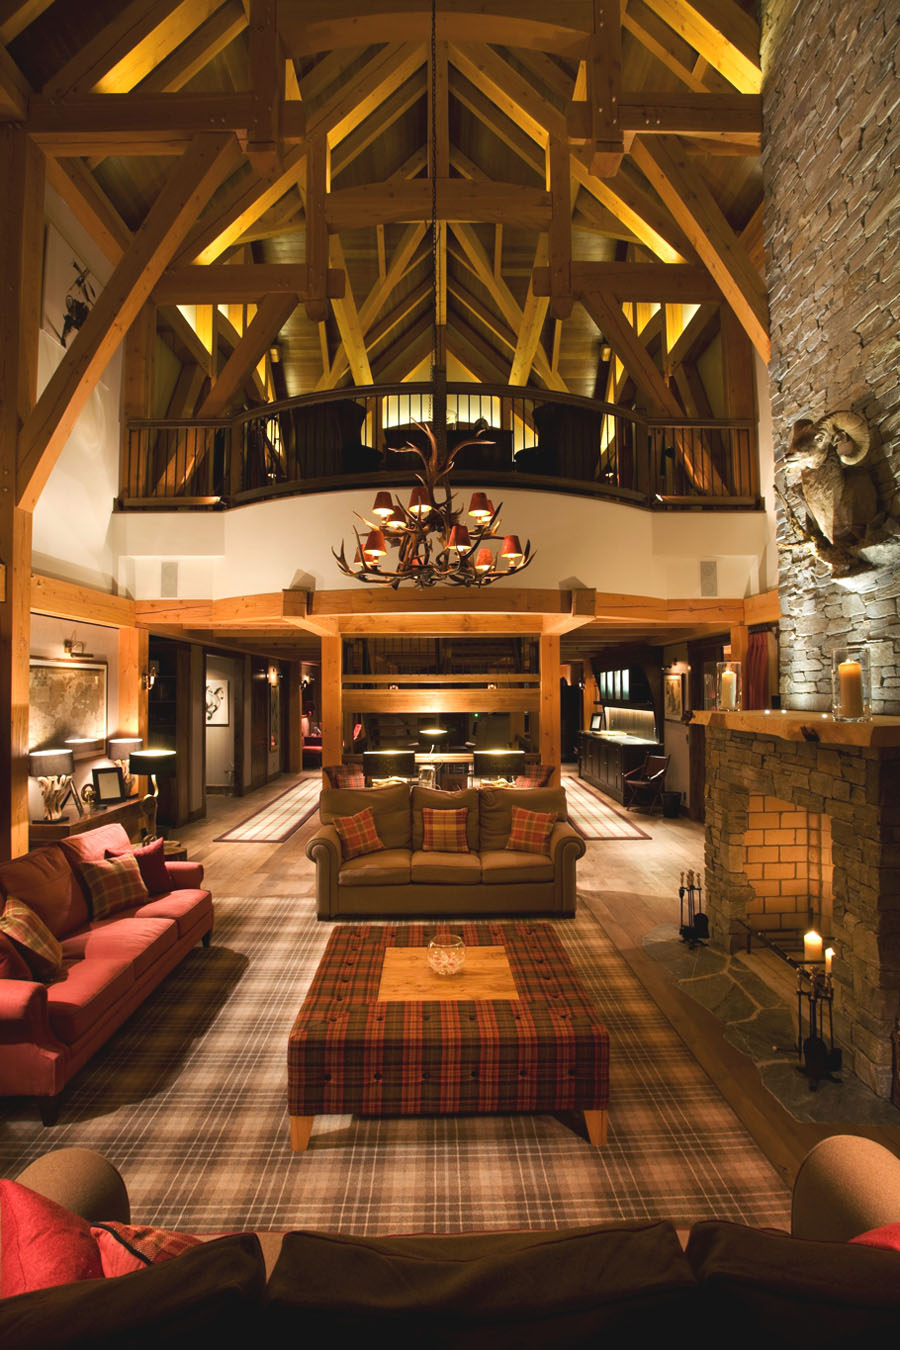 Bighorn lodge revelstoke mountain resort idesignarch for Home decor online canada